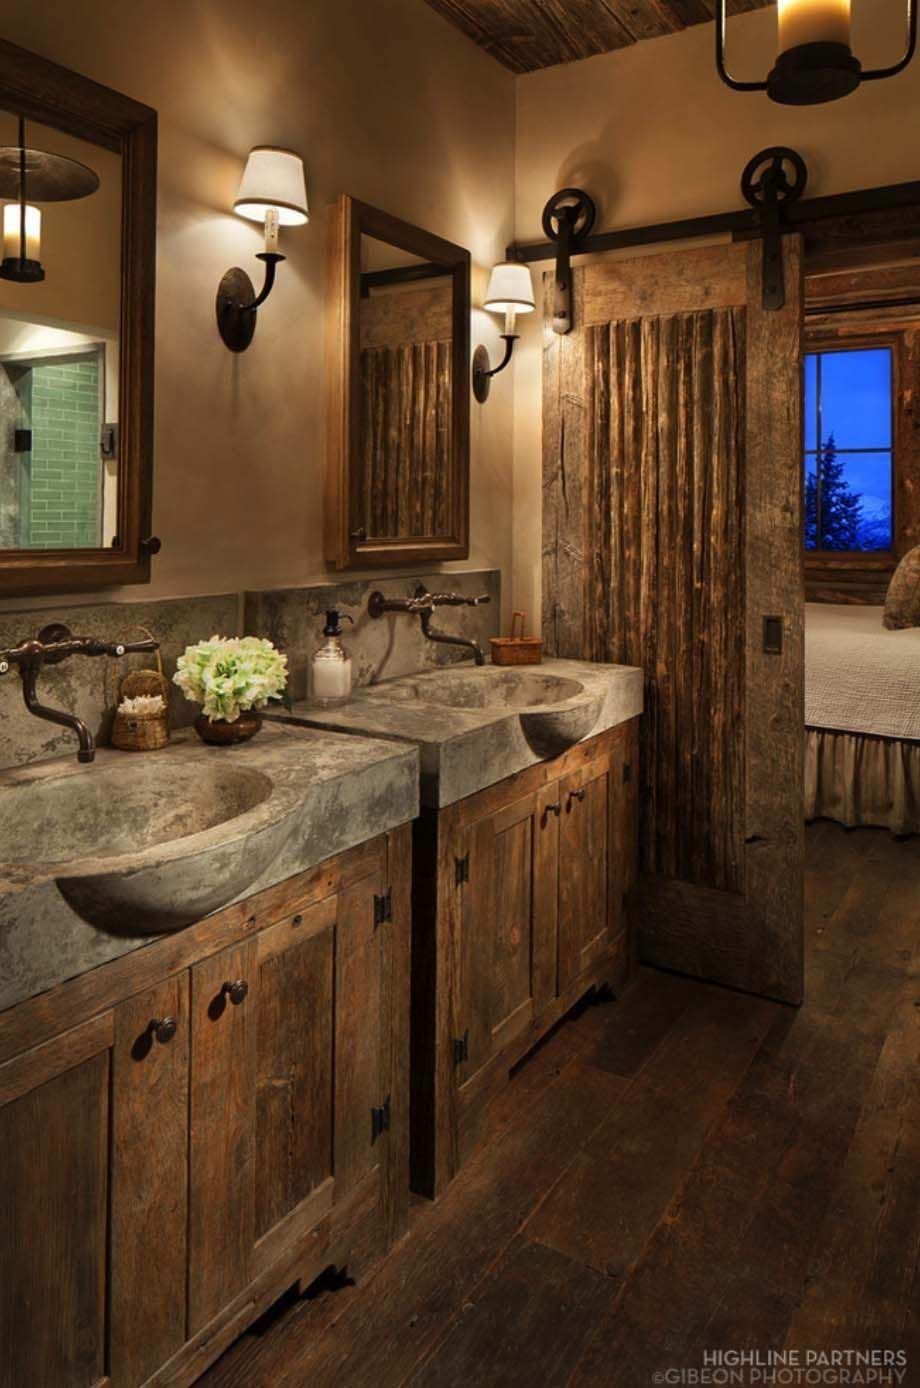 Rustic Bathroom Dcor with Concrete Sinks and